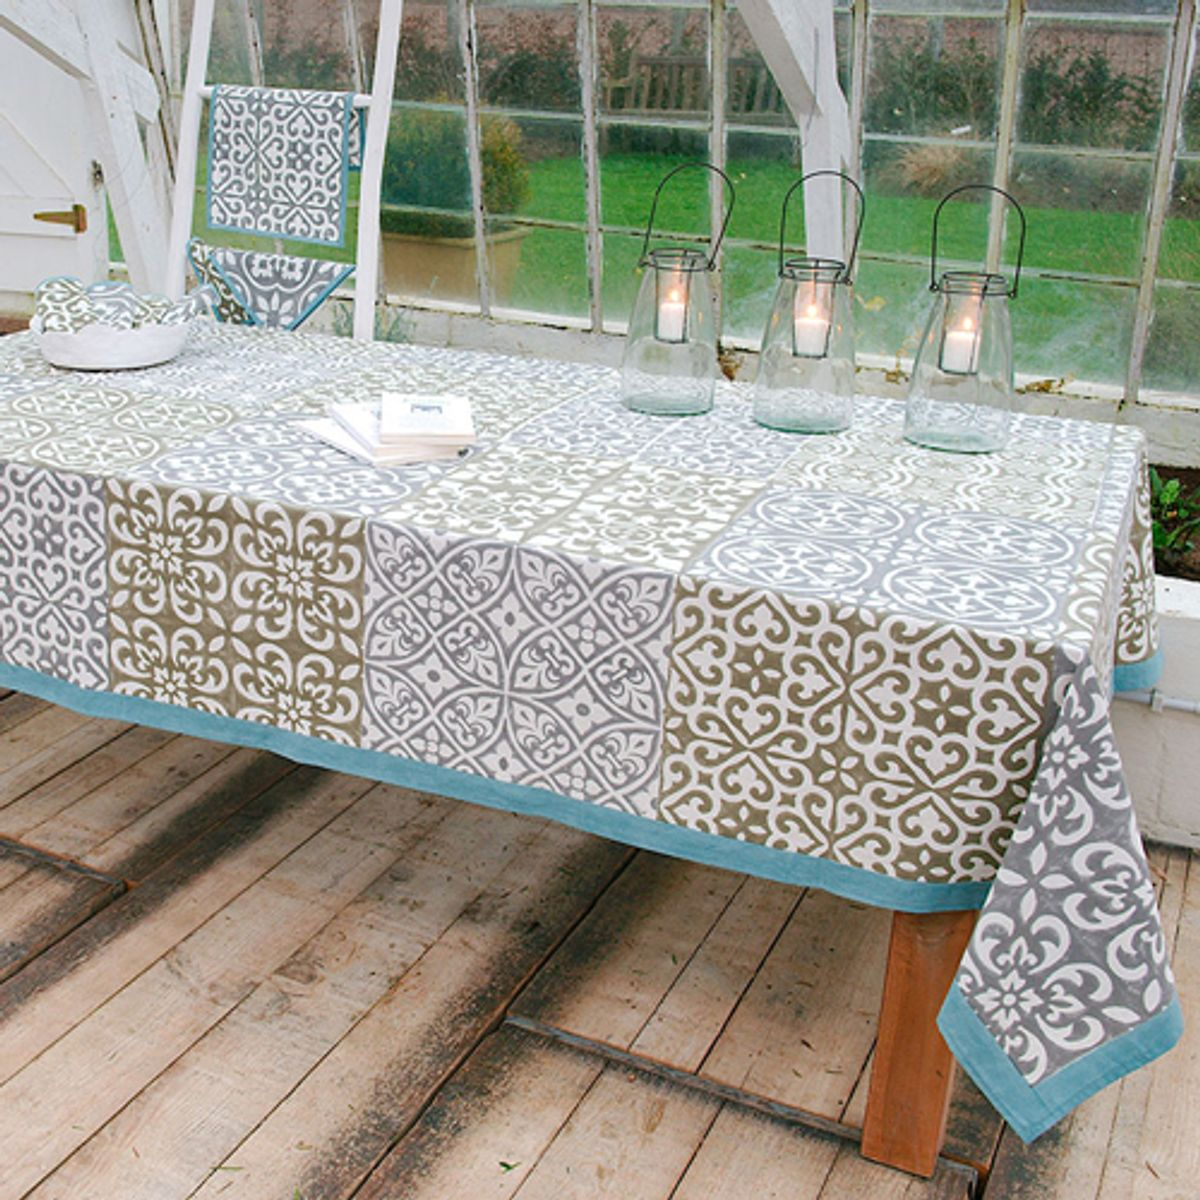 Nappe en coton esprit carreaux de ciment gris bleu windy hill decoclico - Nappe carreaux de ciment ...